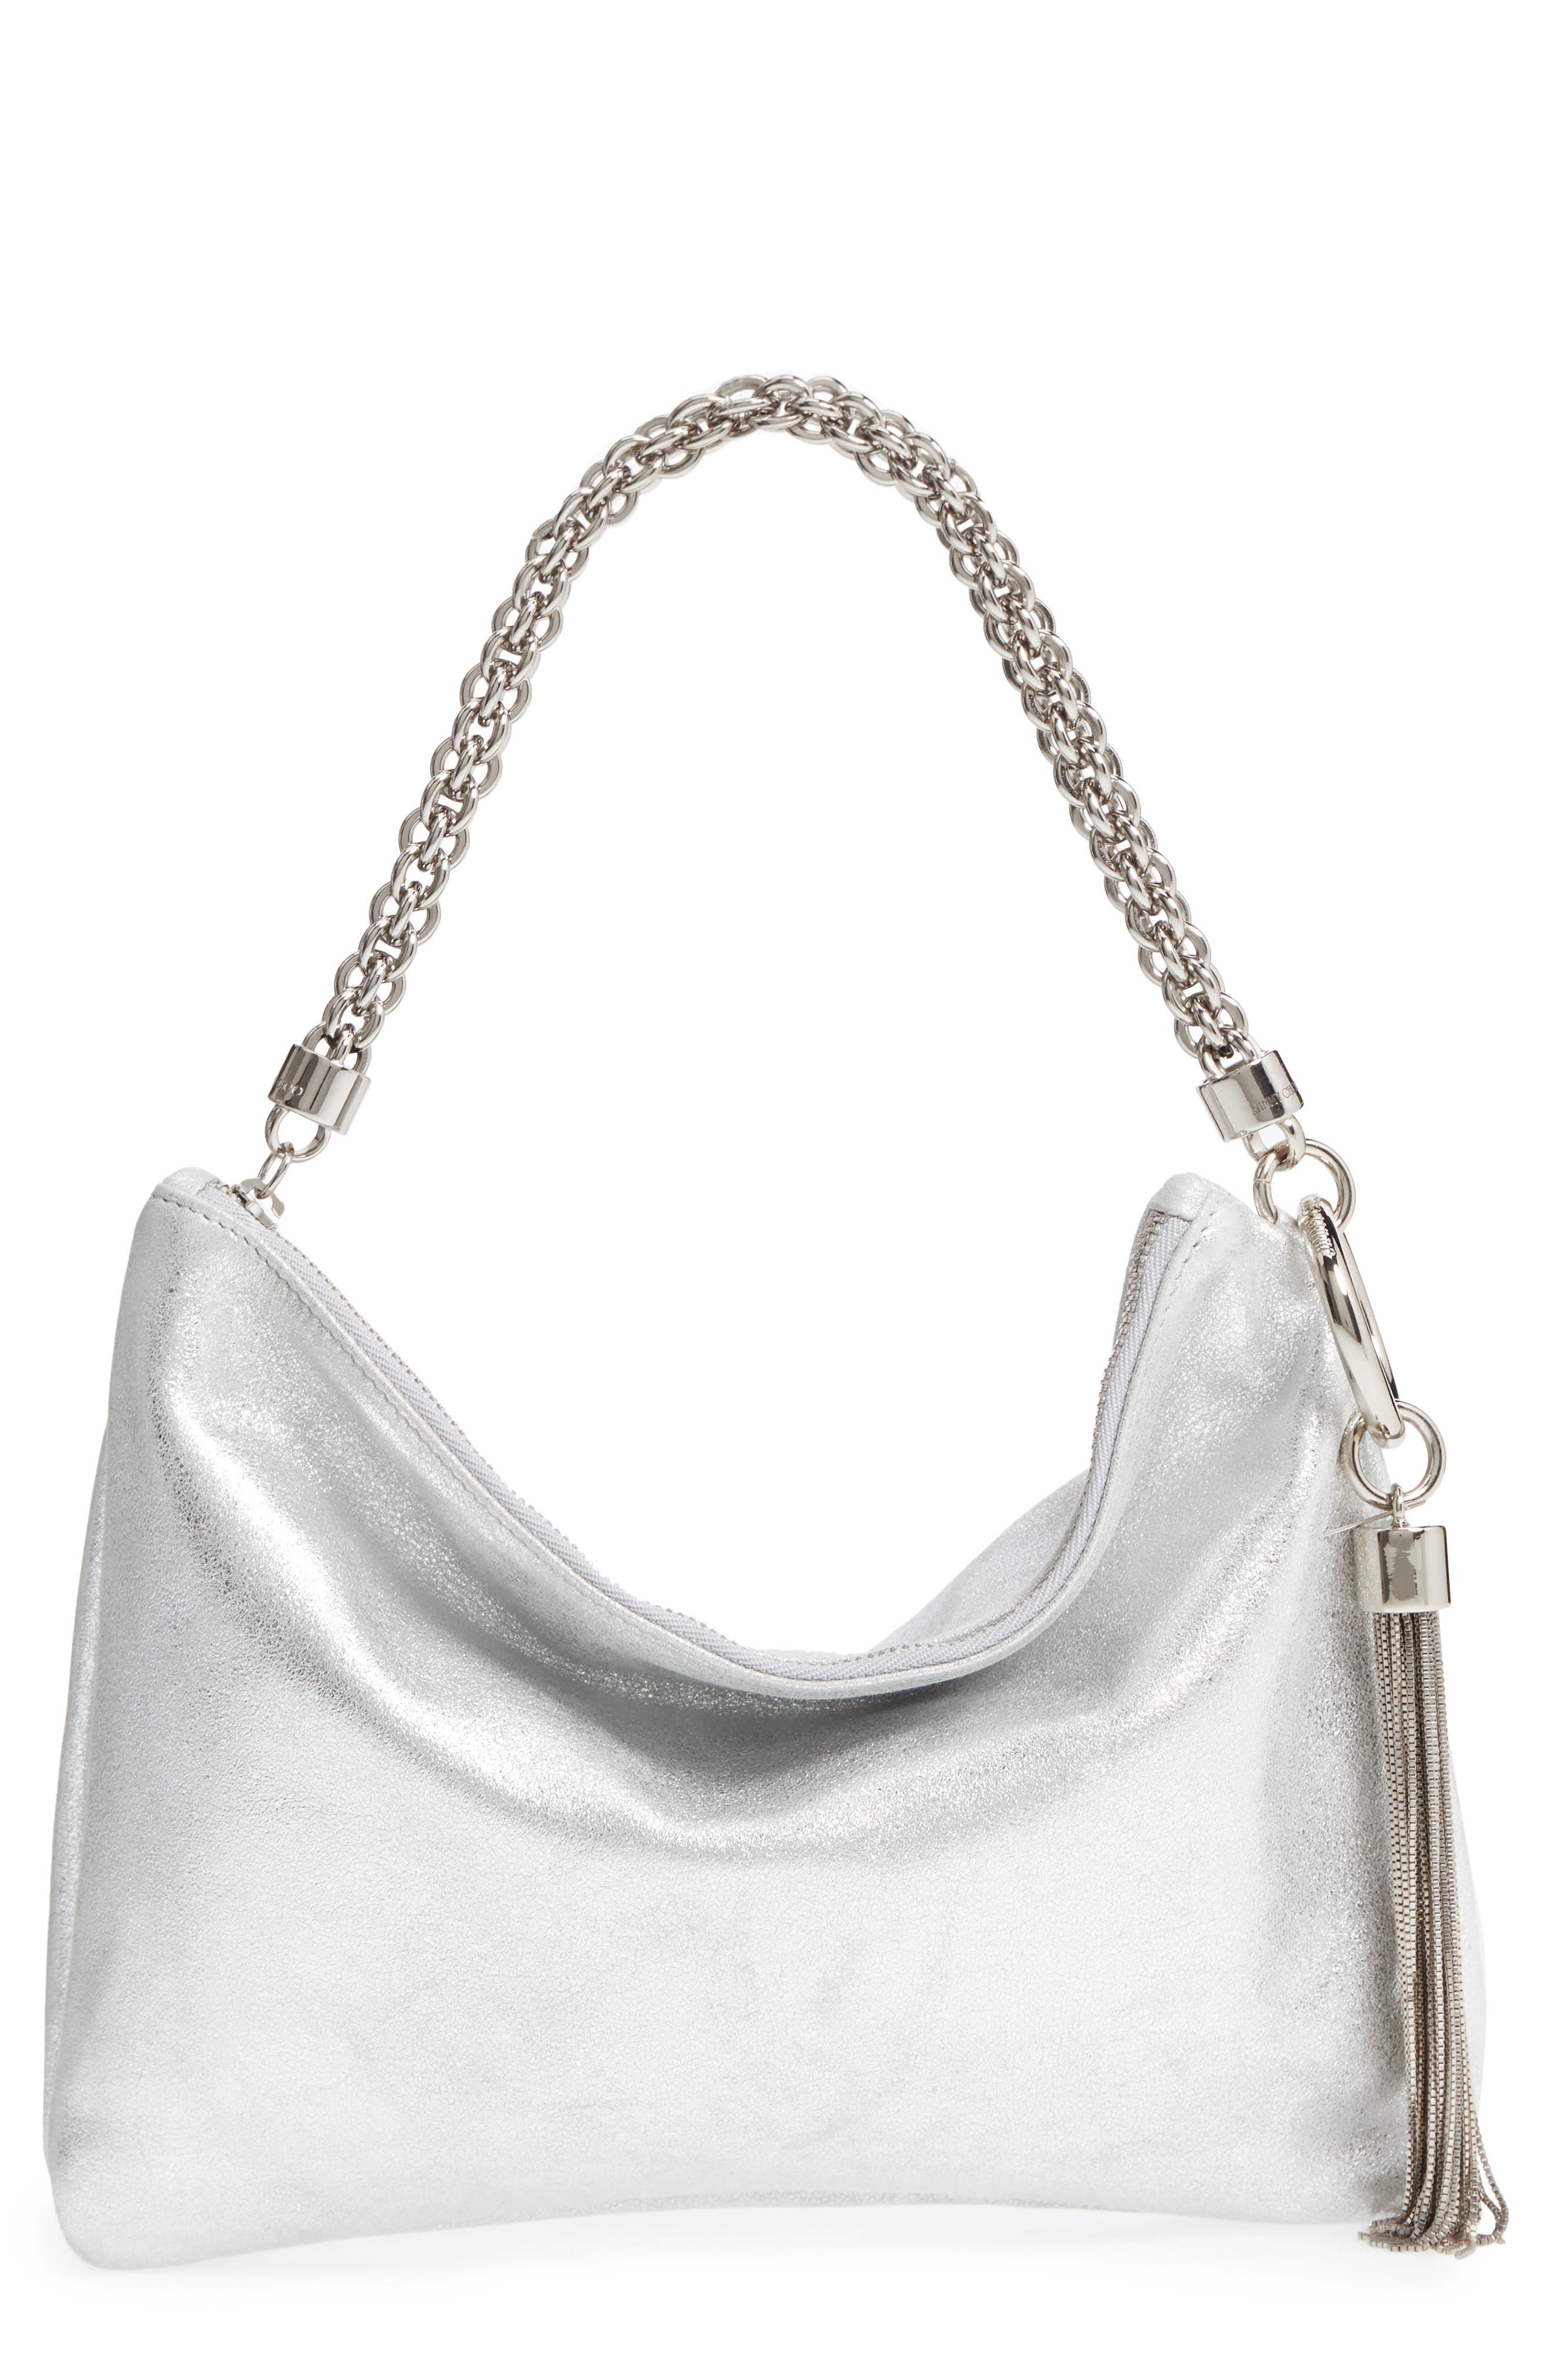 Callie Evening Metallic Leather Clutch,                             Main thumbnail 1, color,                             SILVER